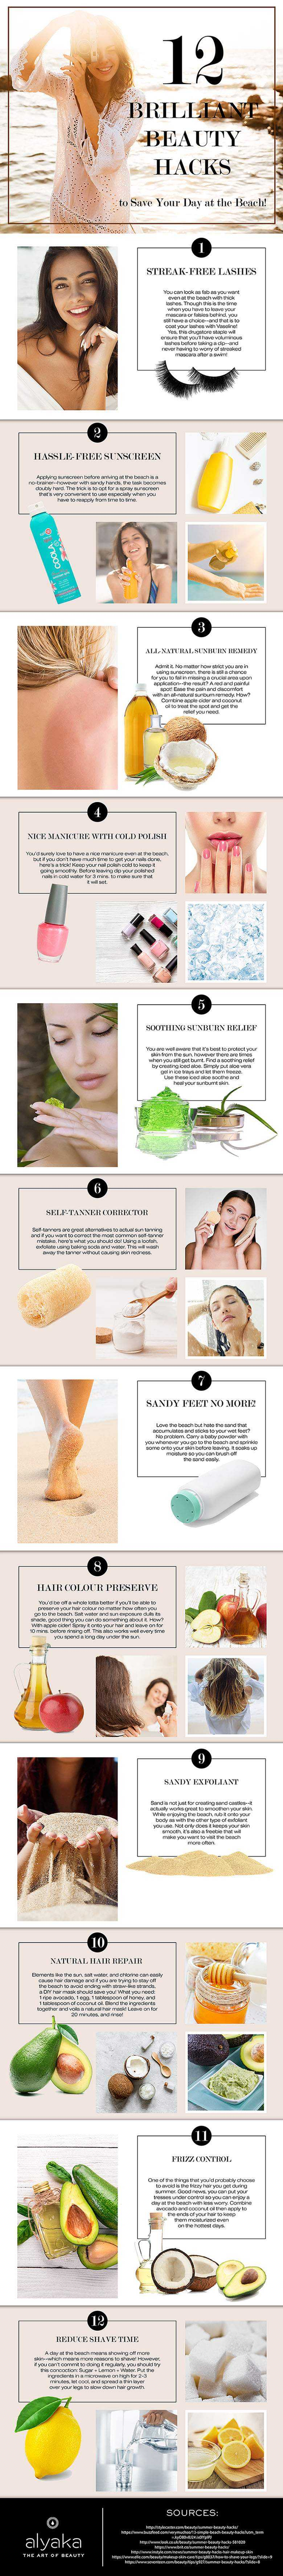 12 Beauty Hacks To Save Your Day At The Beach